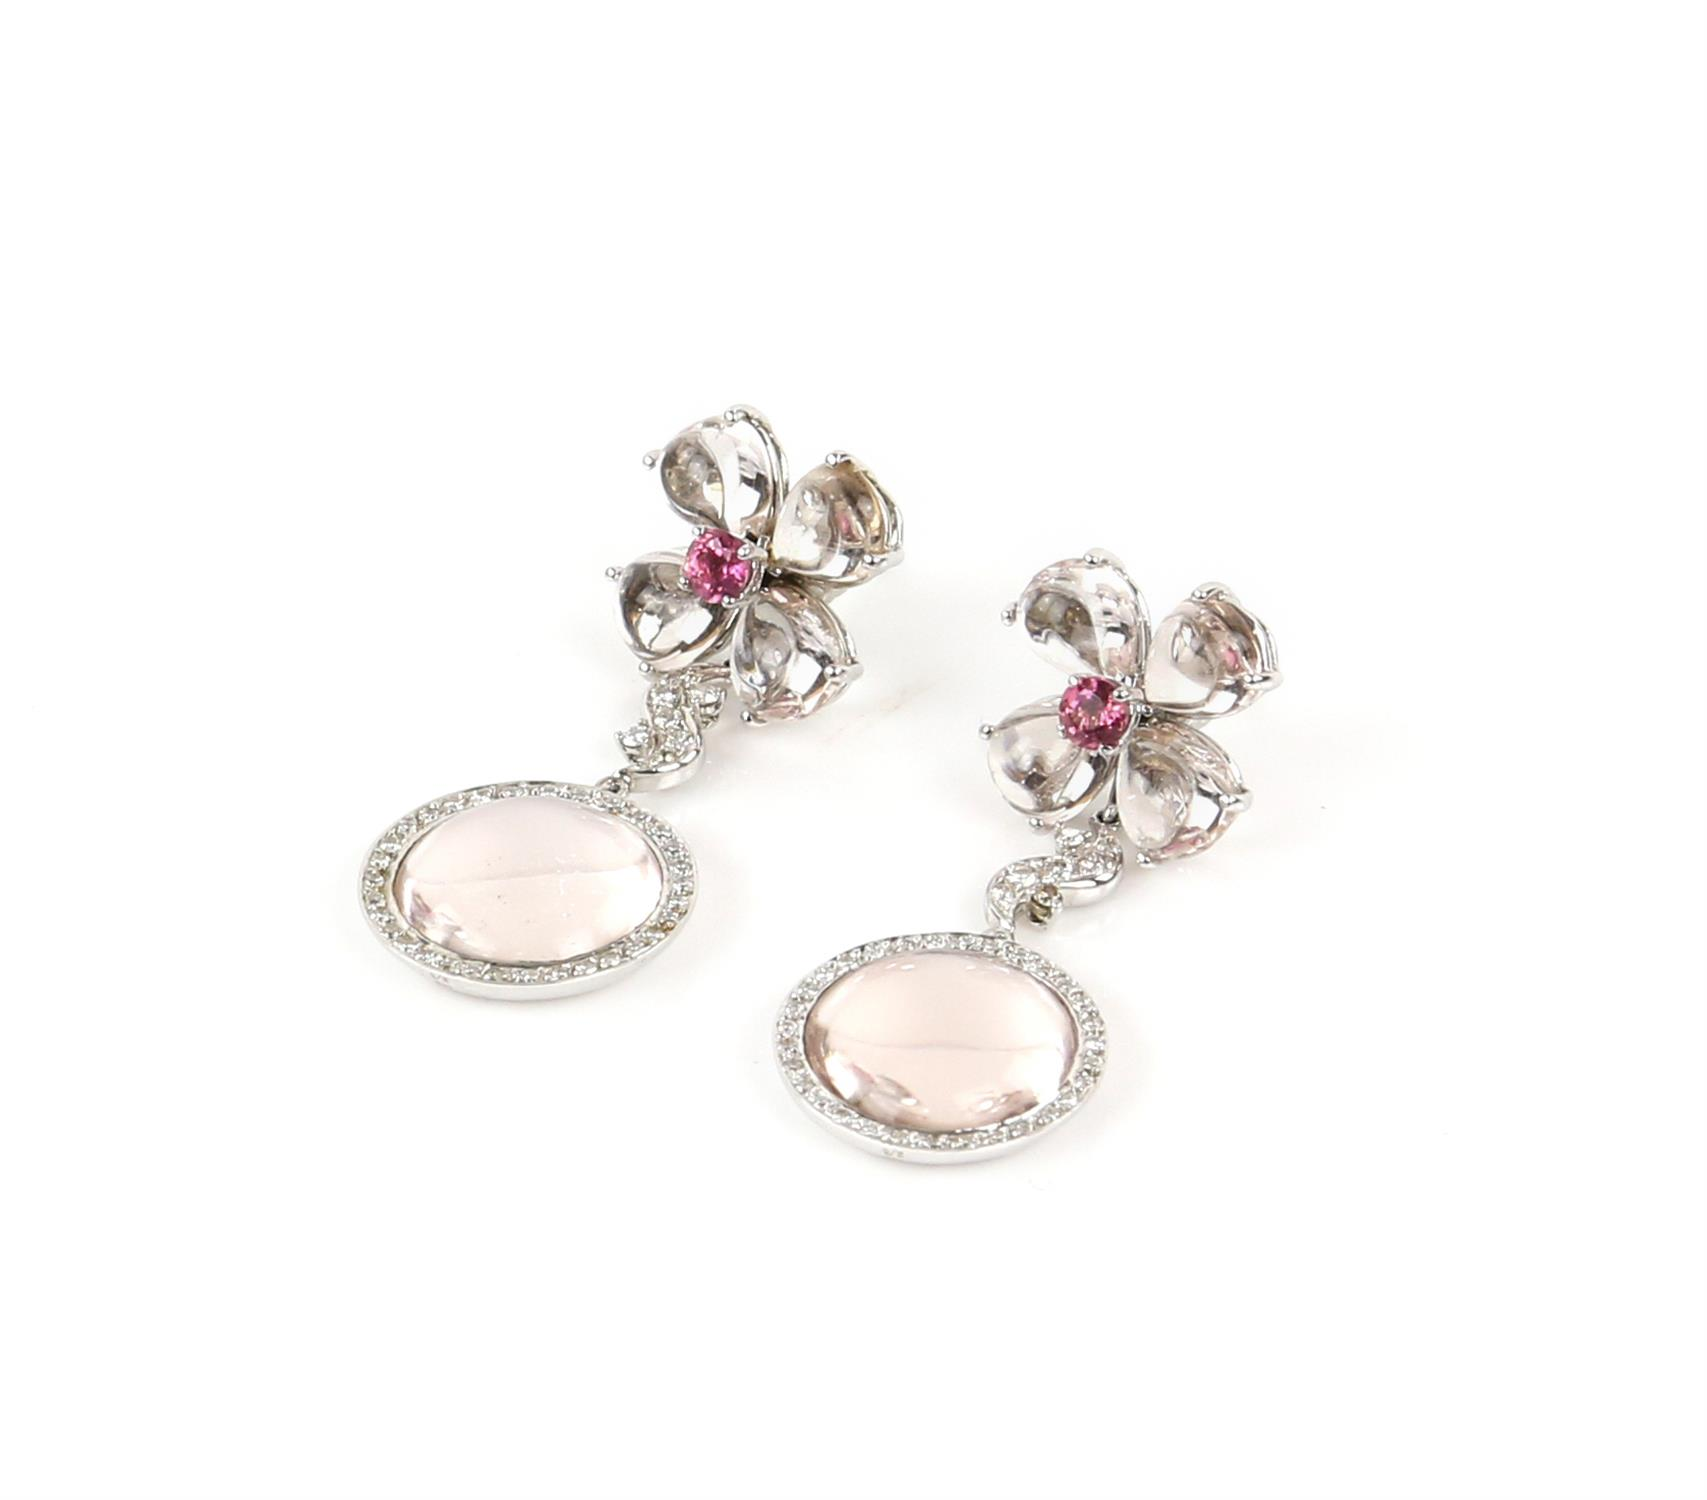 Pair of Gilan drop earrings, designed as a floral motif with a central synthetic pink spinel, - Image 5 of 5